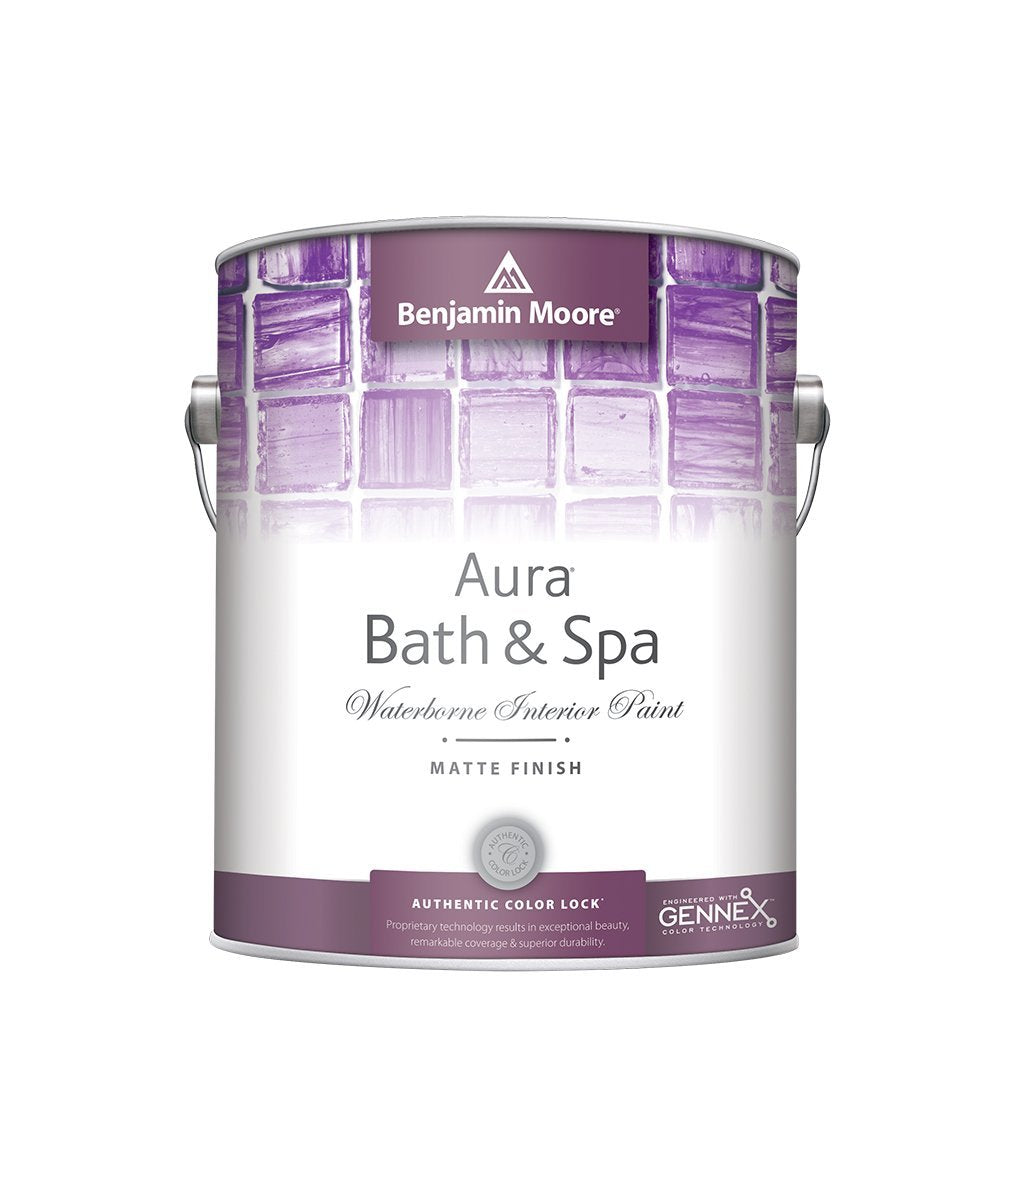 Benjamin Moore Aura Bath and Spa available in Gallons and Quarts online at Regal Paint Centers.